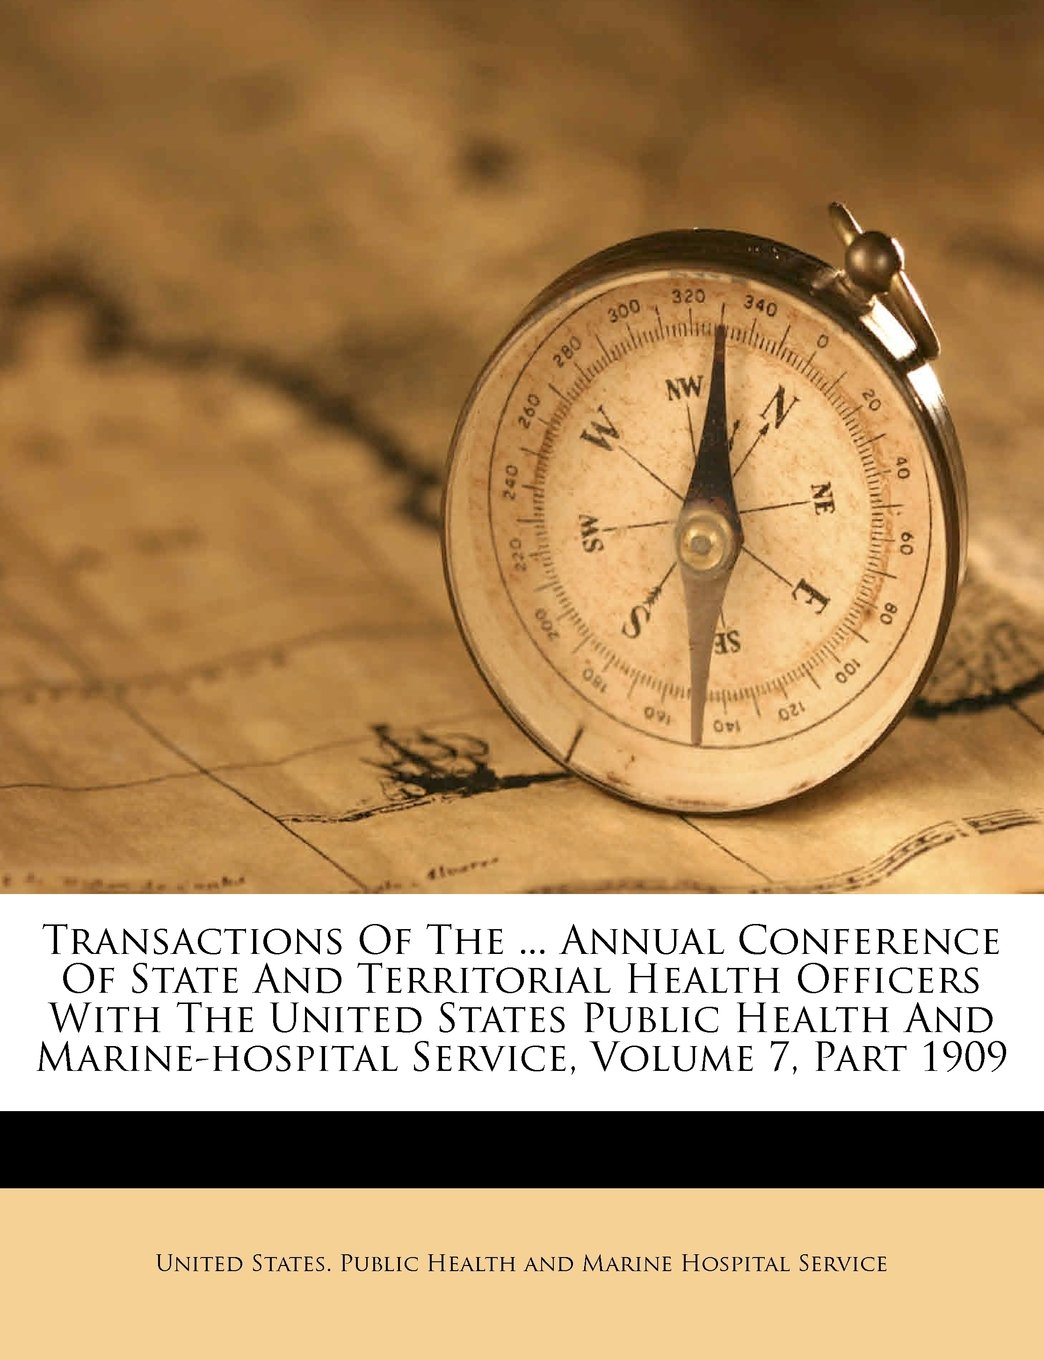 Transactions Of The ... Annual Conference Of State And Territorial Health Officers With The United States Public Health And Marine-hospital Service, Volume 7, Part 1909 ebook